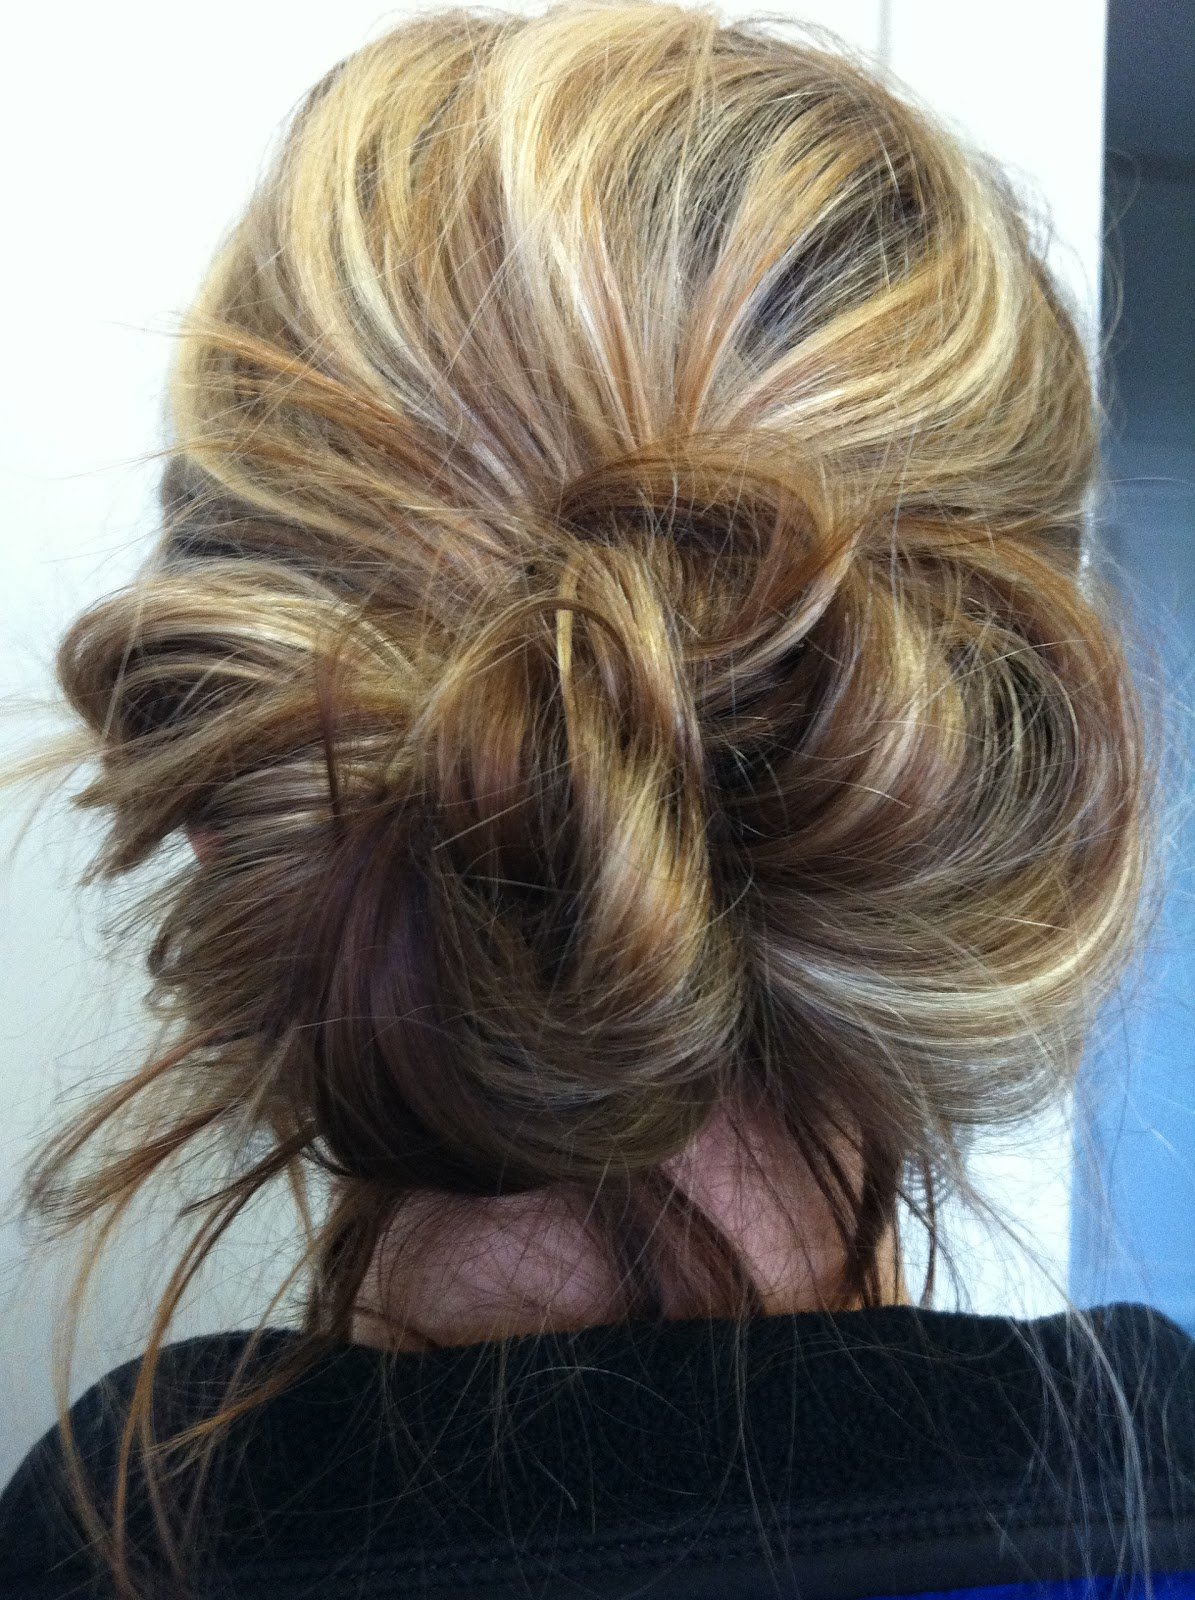 The Best Bye Bye Beehive │ A Hairstyle Blog My Messy Bun As Of Late Pictures